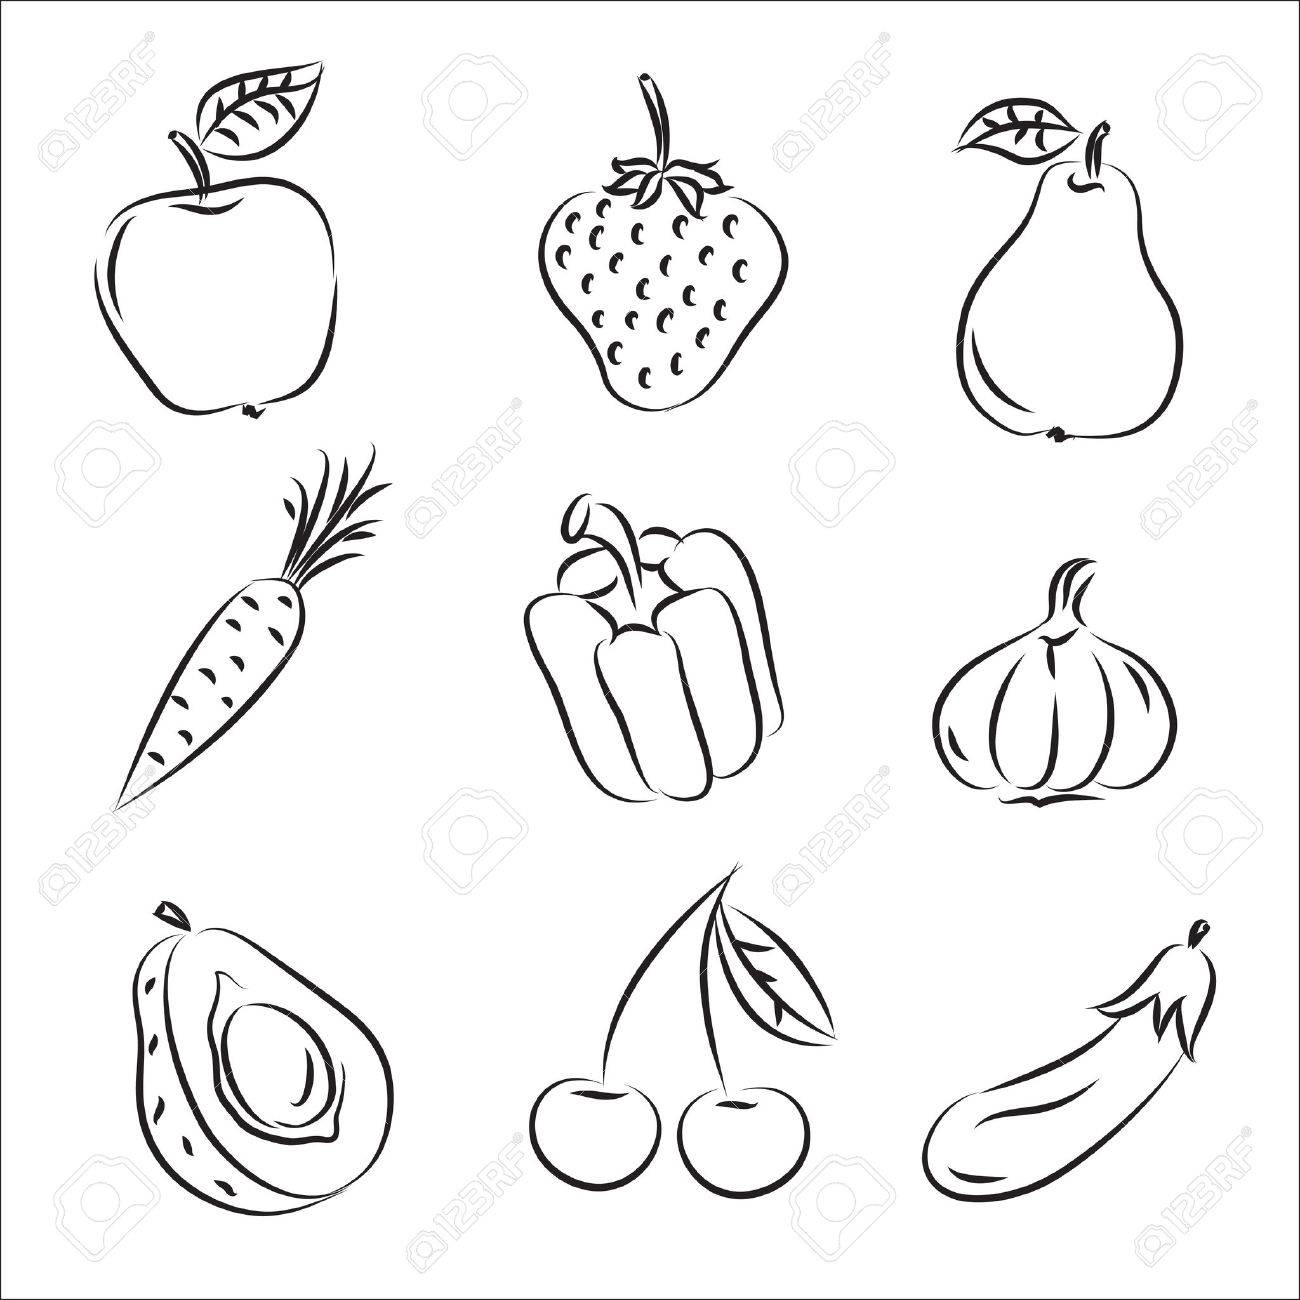 Fruits and Vegetables - 8152589